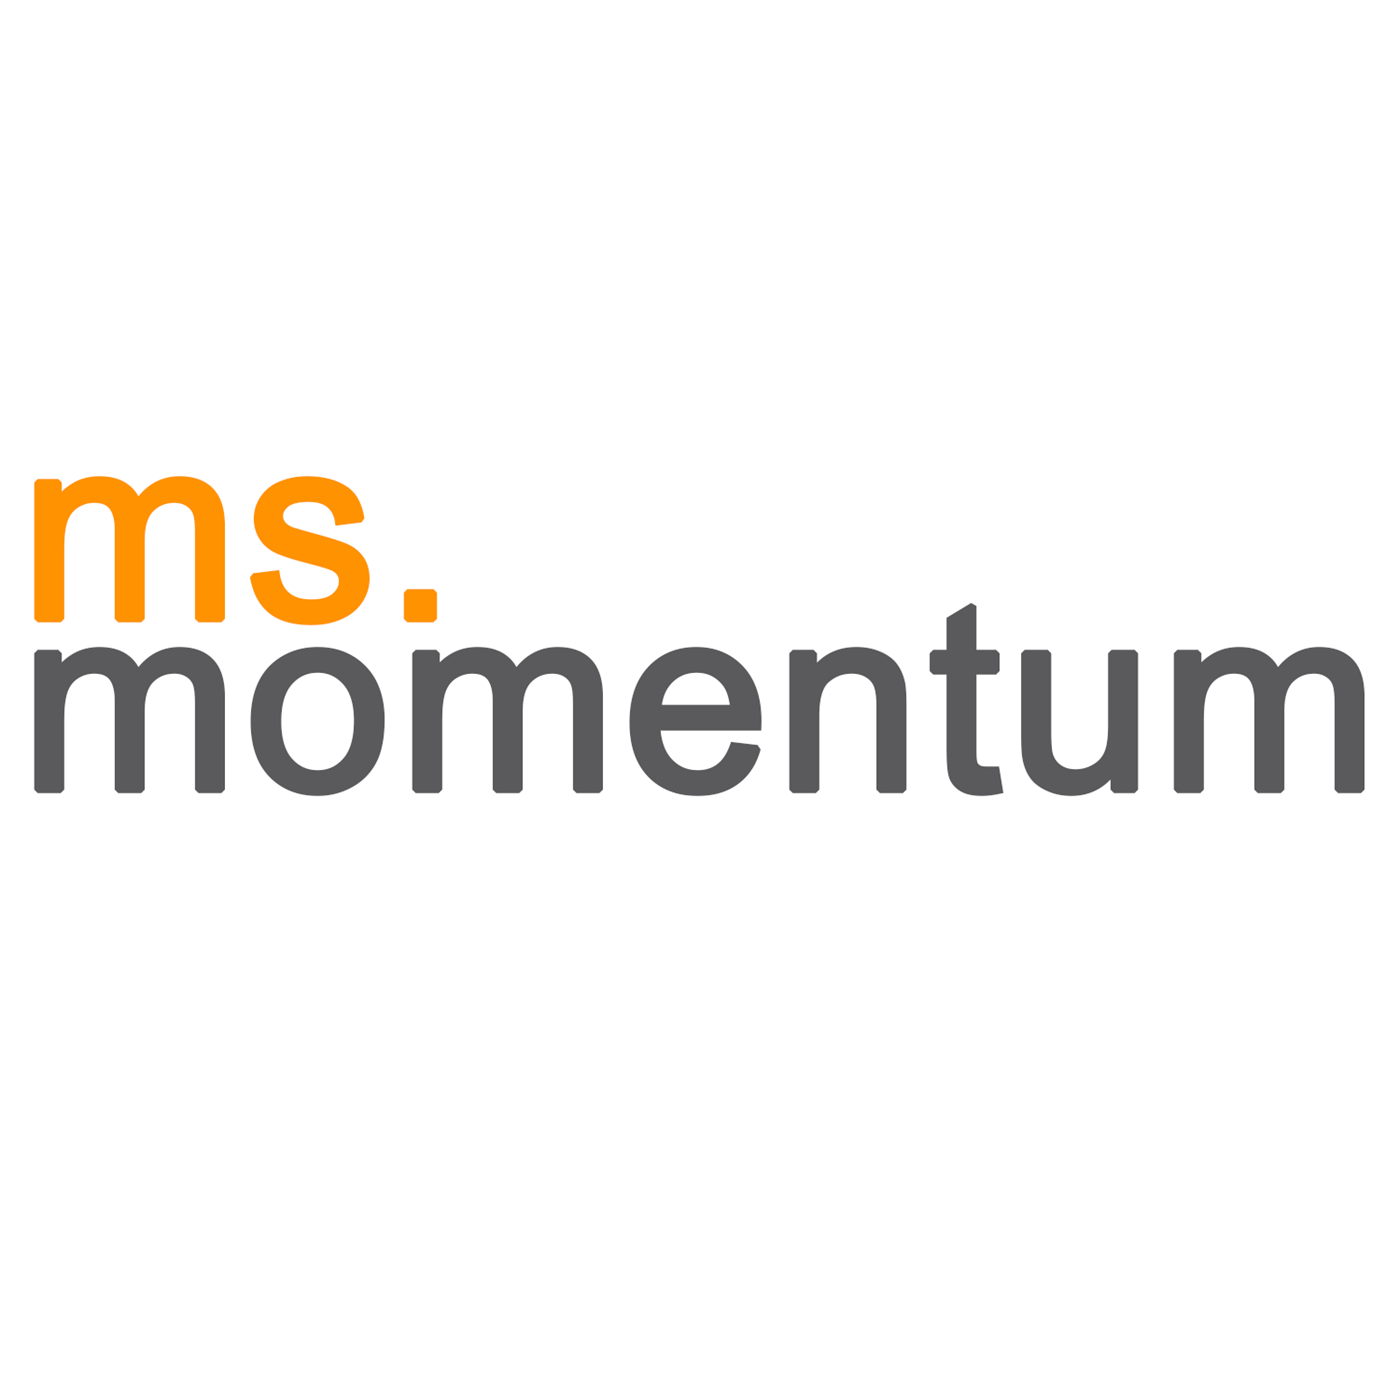 MS Momentum - 19-10-2020 - Paul - Otago CDM - Part 1